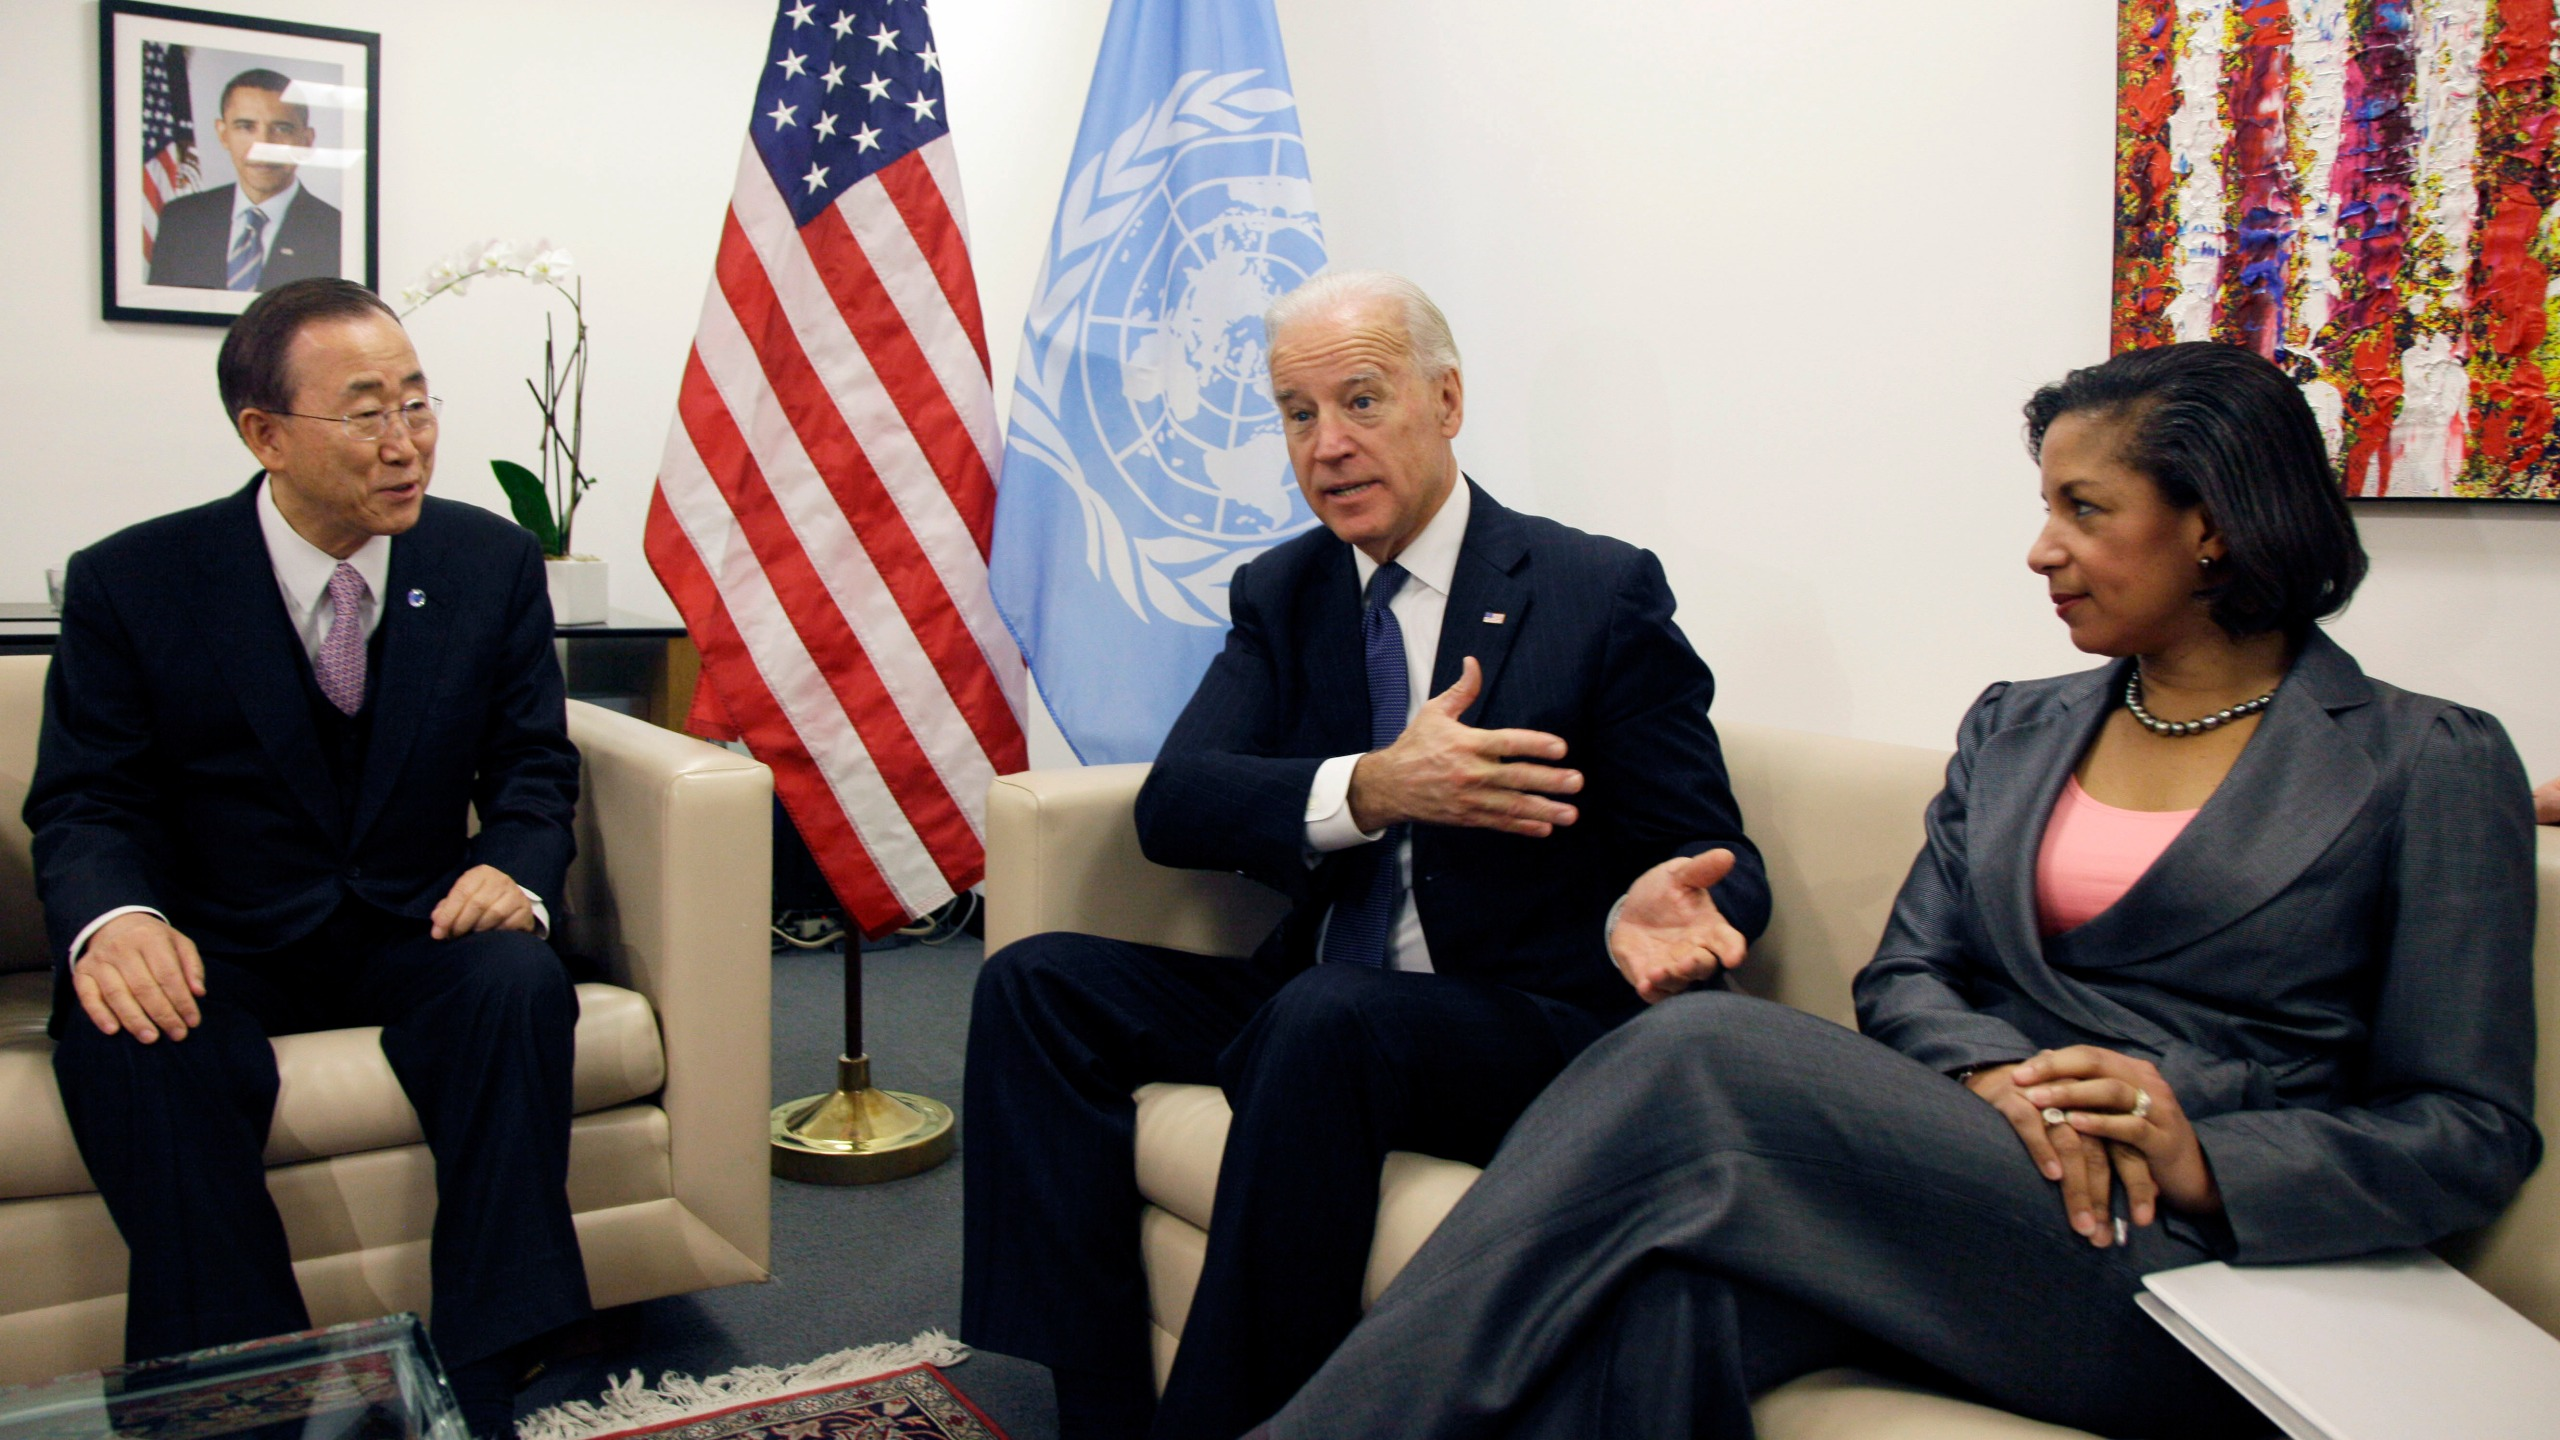 Joe Biden, Susan Rice, Ban Ki-moon